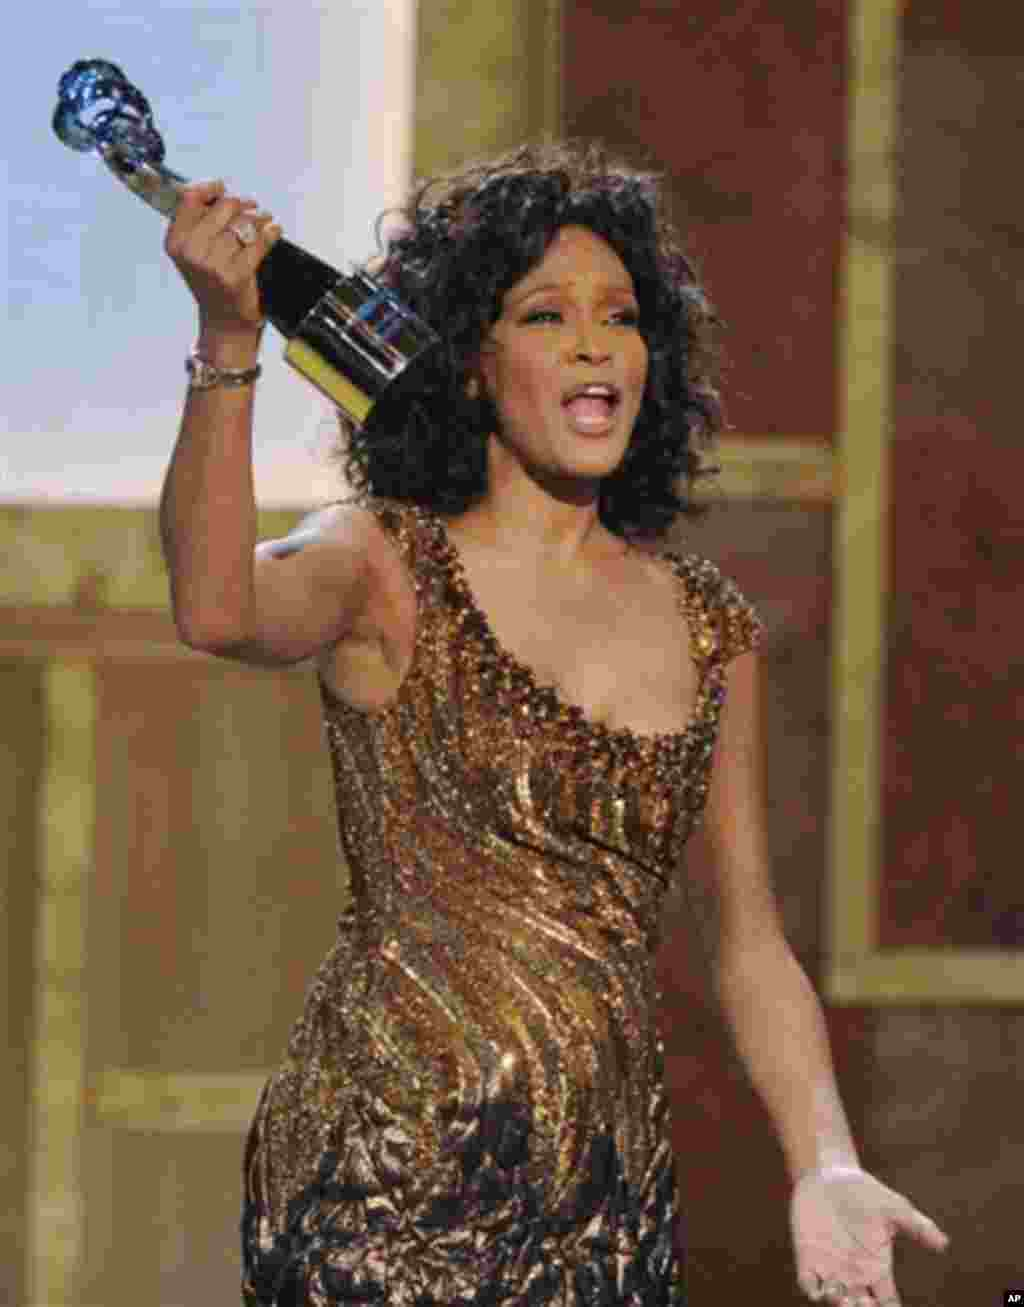 FILE - In this Saturday, Jan. 16, 2010 file photo, Whitney Houston accepts an award at the Warner Theatre during the 2010 BET Hip Hop Honors in Washington. Houston died Saturday, Feb. 11, 2012, she was 48. (AP Photo/Nick Wass)